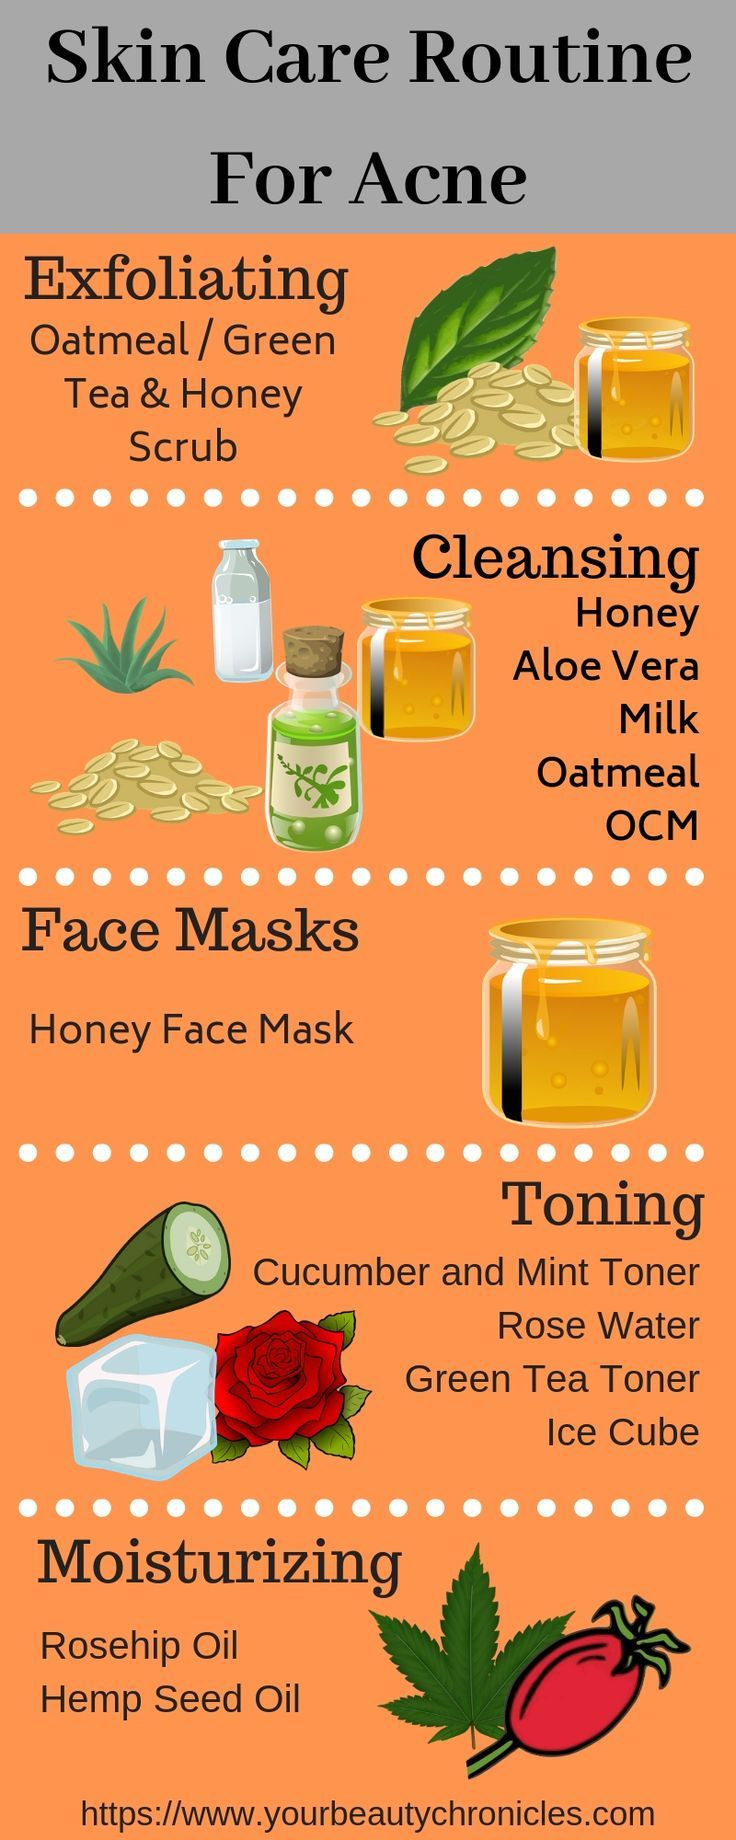 Die All Natural Skin Care Routine für Akne   - Face - #Akne #Care #die #face #für #Natural #Routine #Skin #skincare